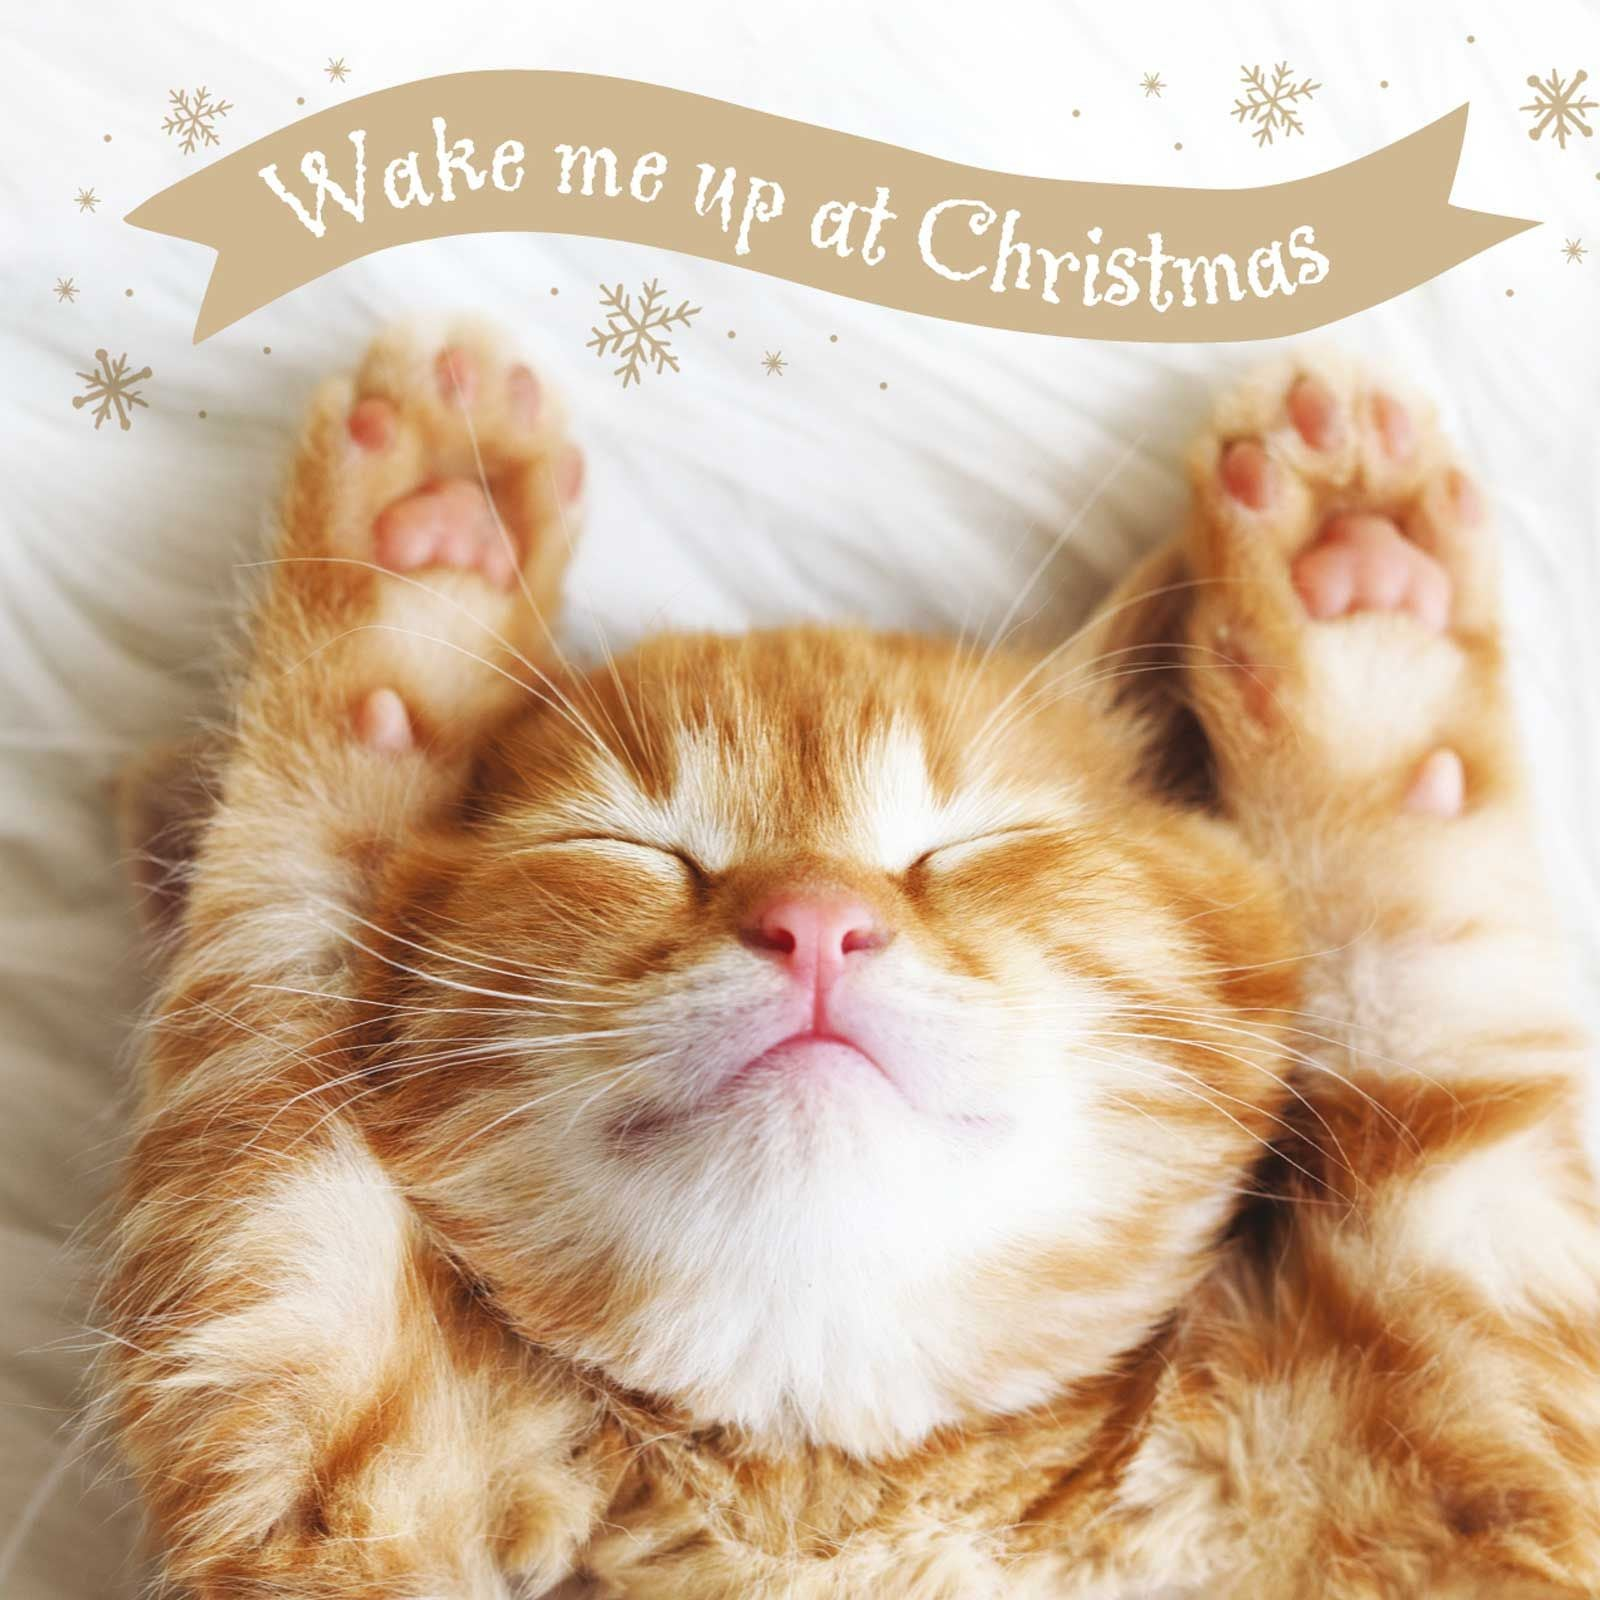 Cat Themed Christmas Cards \u2013 The Cat Gallery